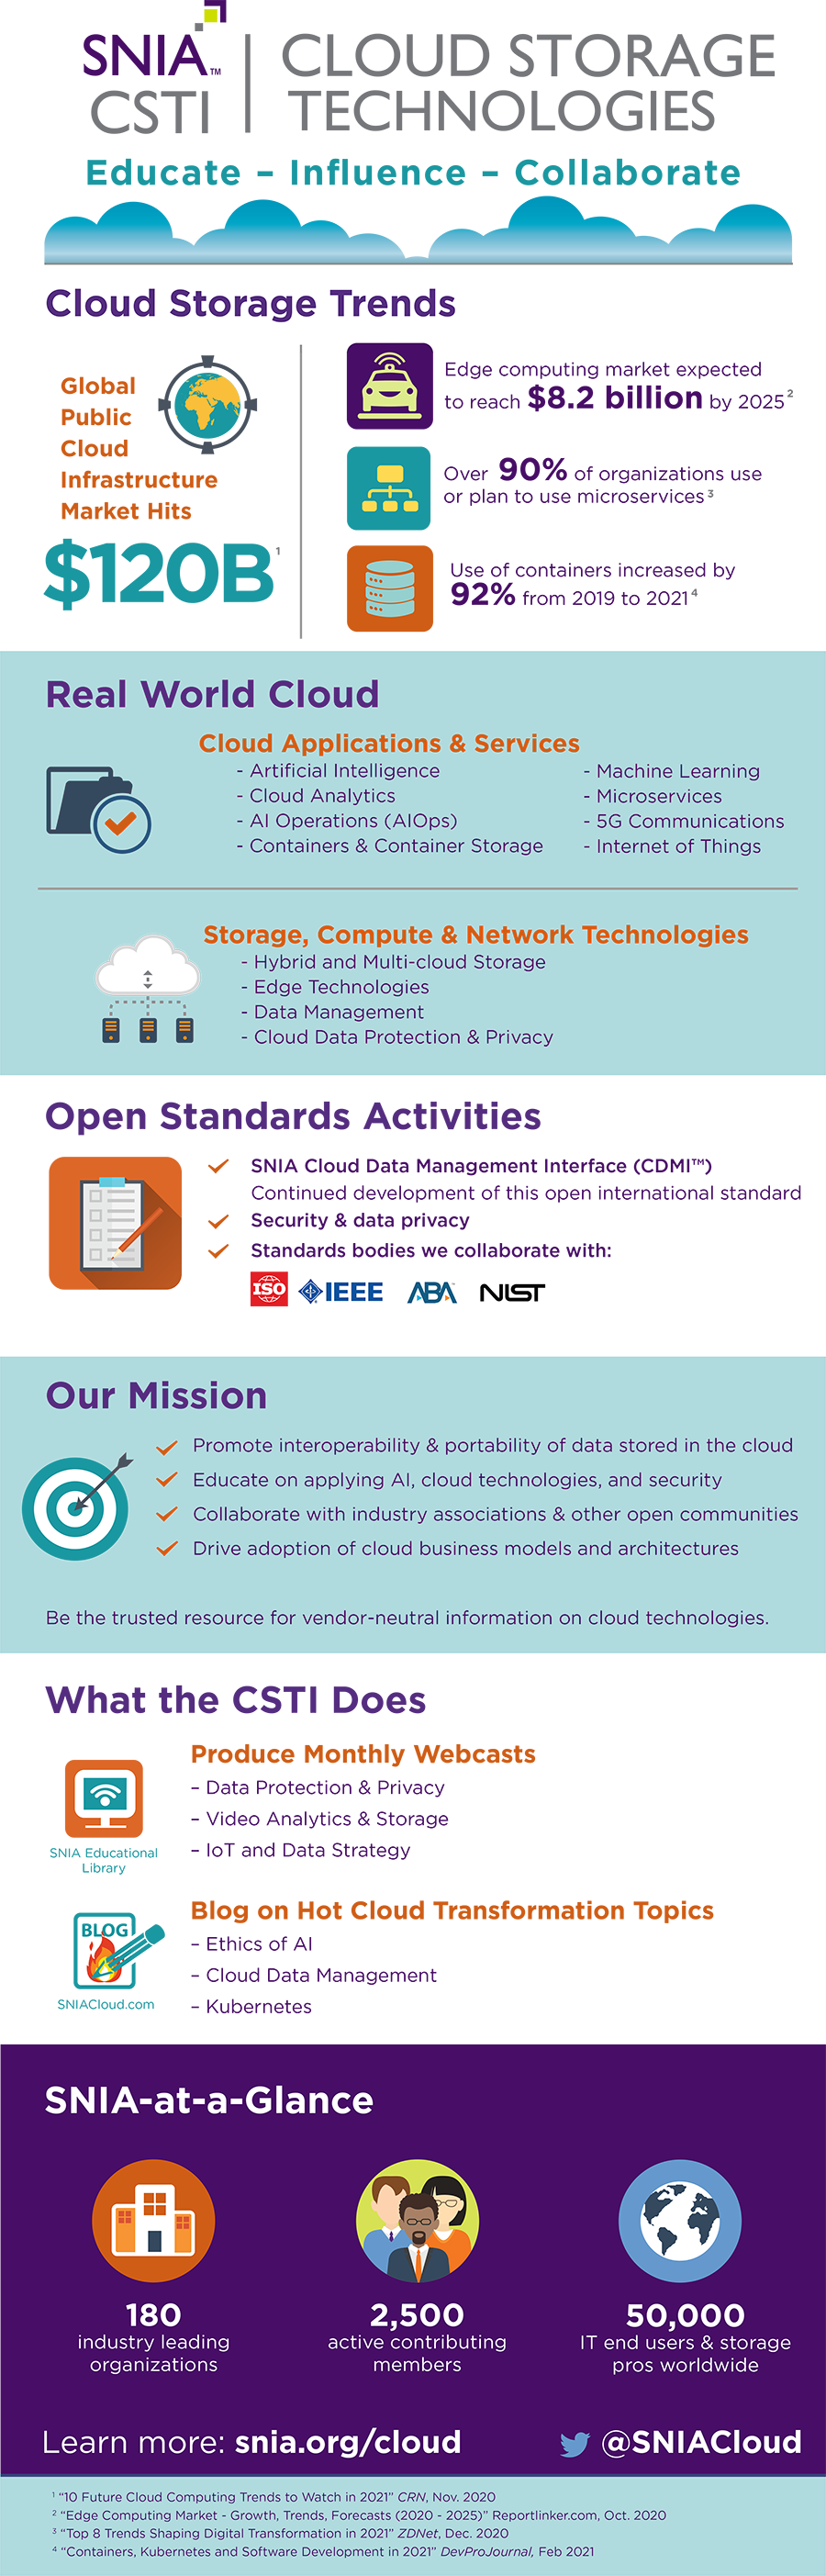 How SNIA Supports Cloud Storage Technologies